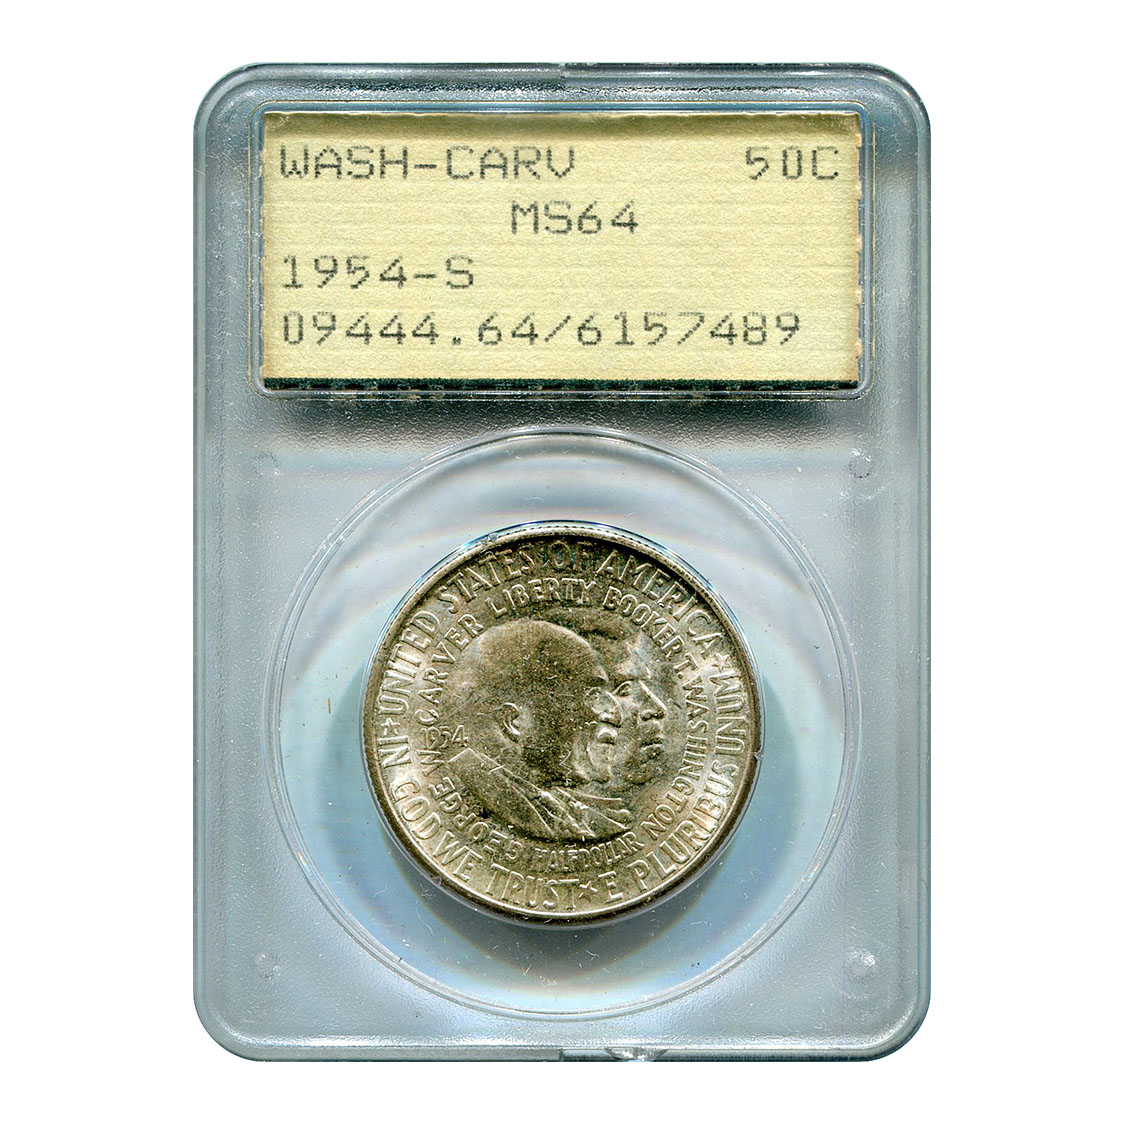 Certified Commemorative Half Dollar Washington Carver 1954-S MS64 PCGS Rattler